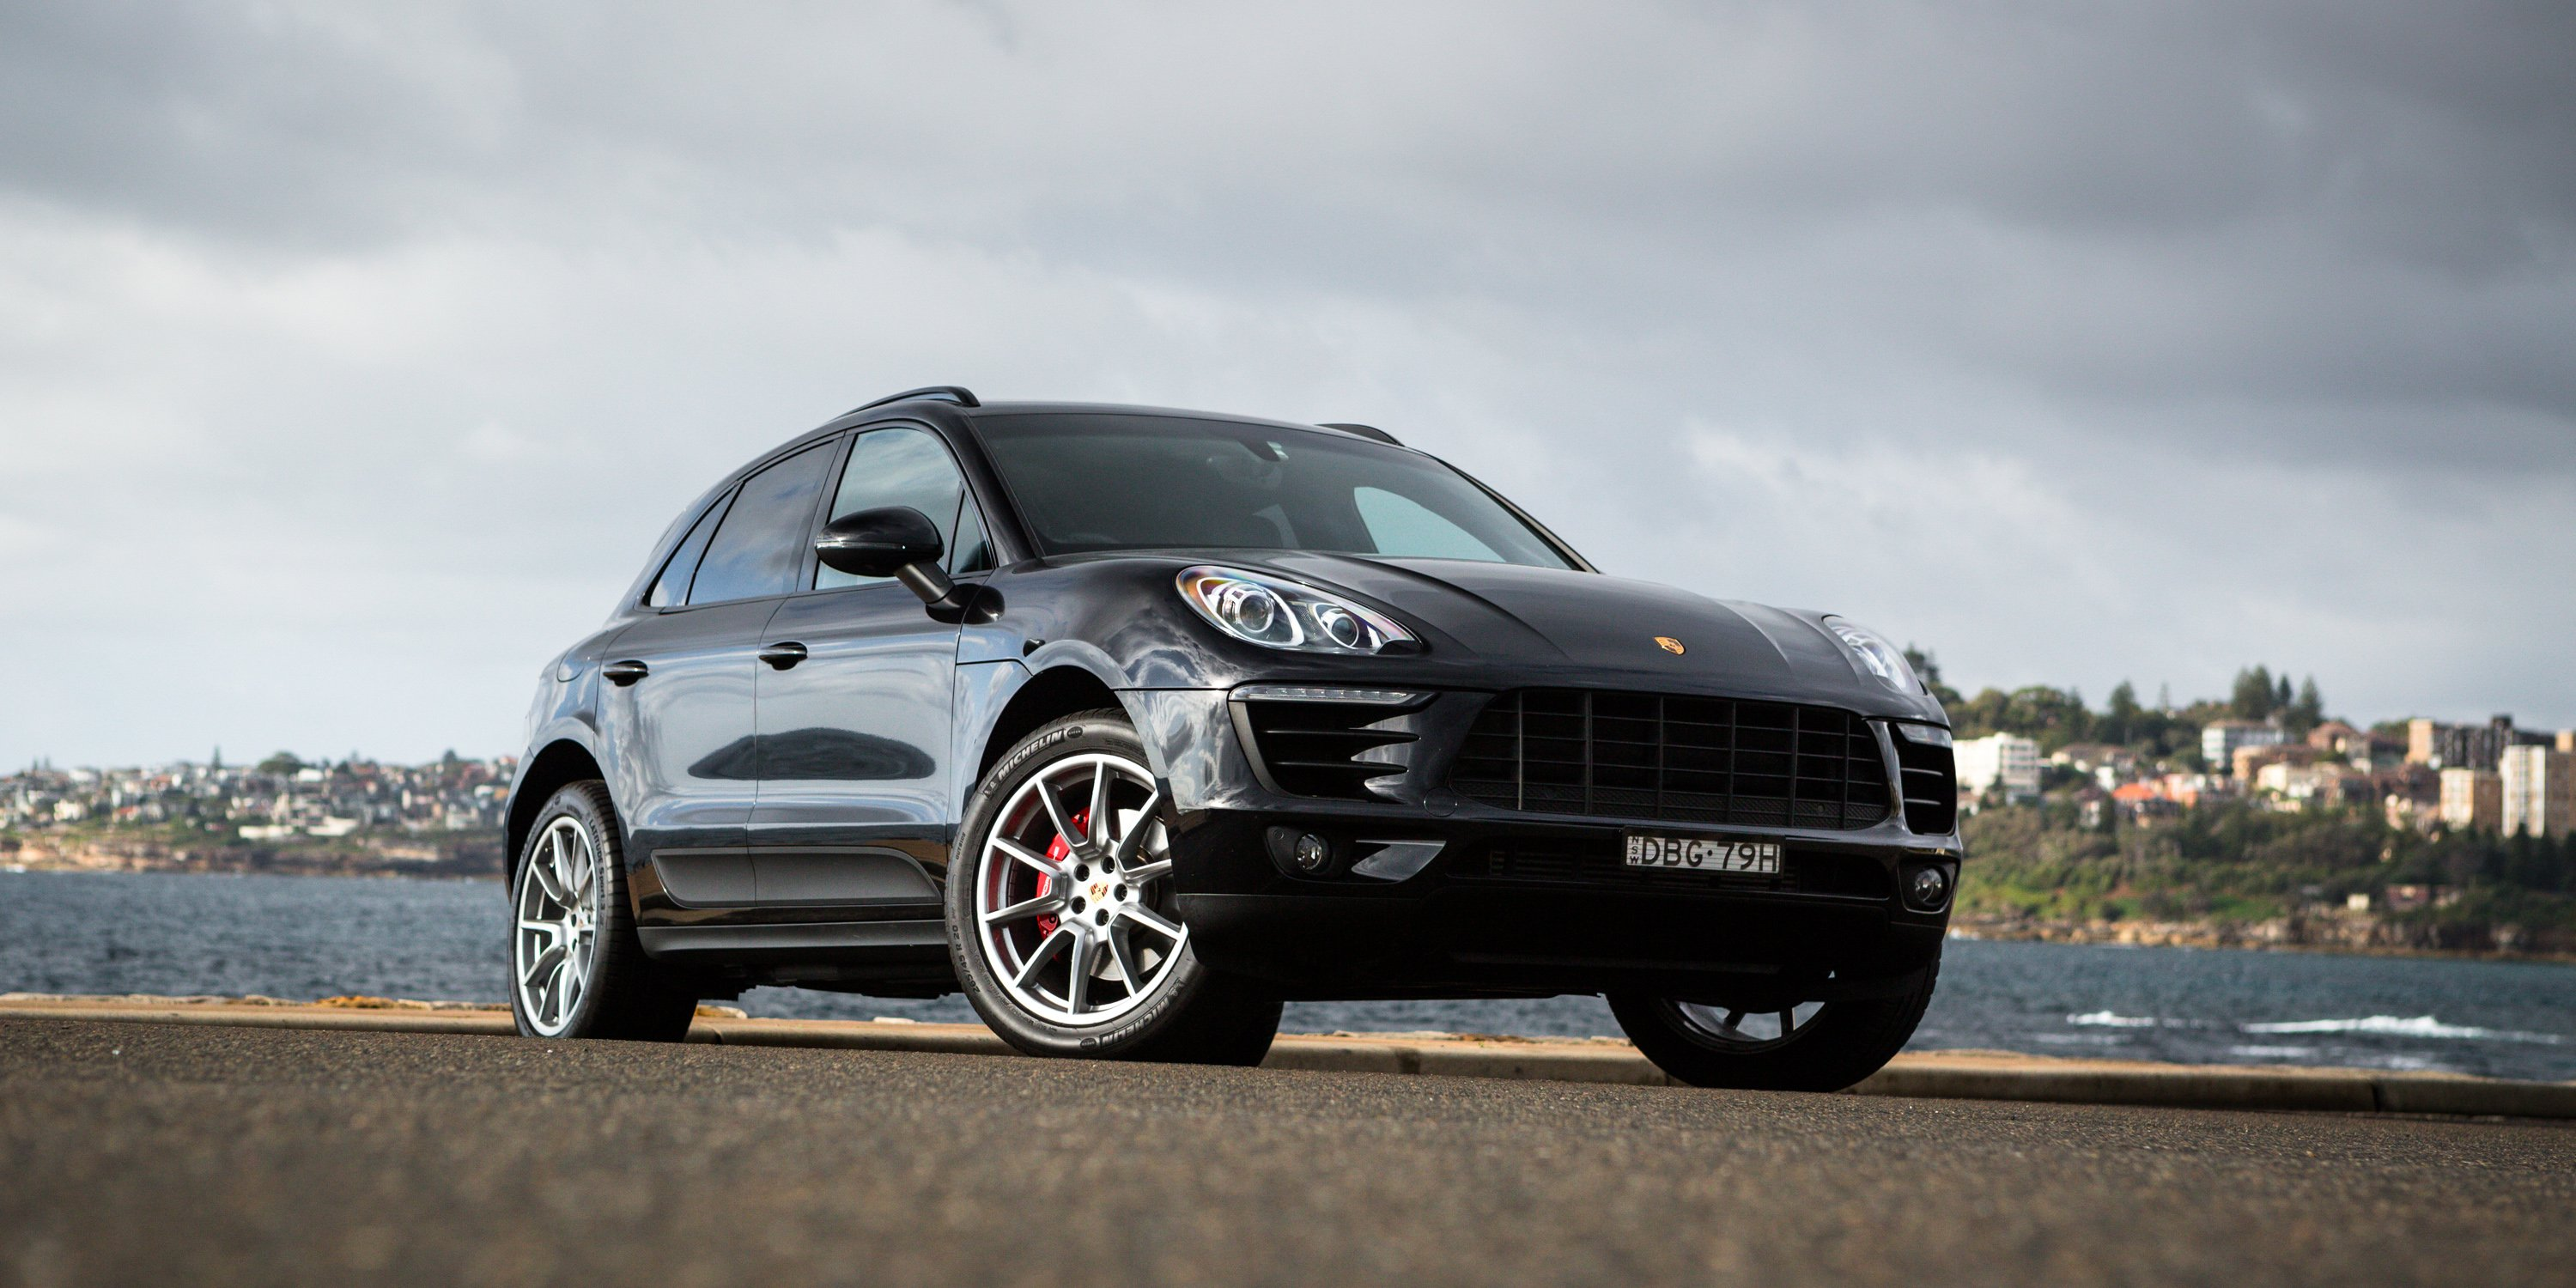 Porsche Suv Sales Doubled Sports Cars In 2016 Photos